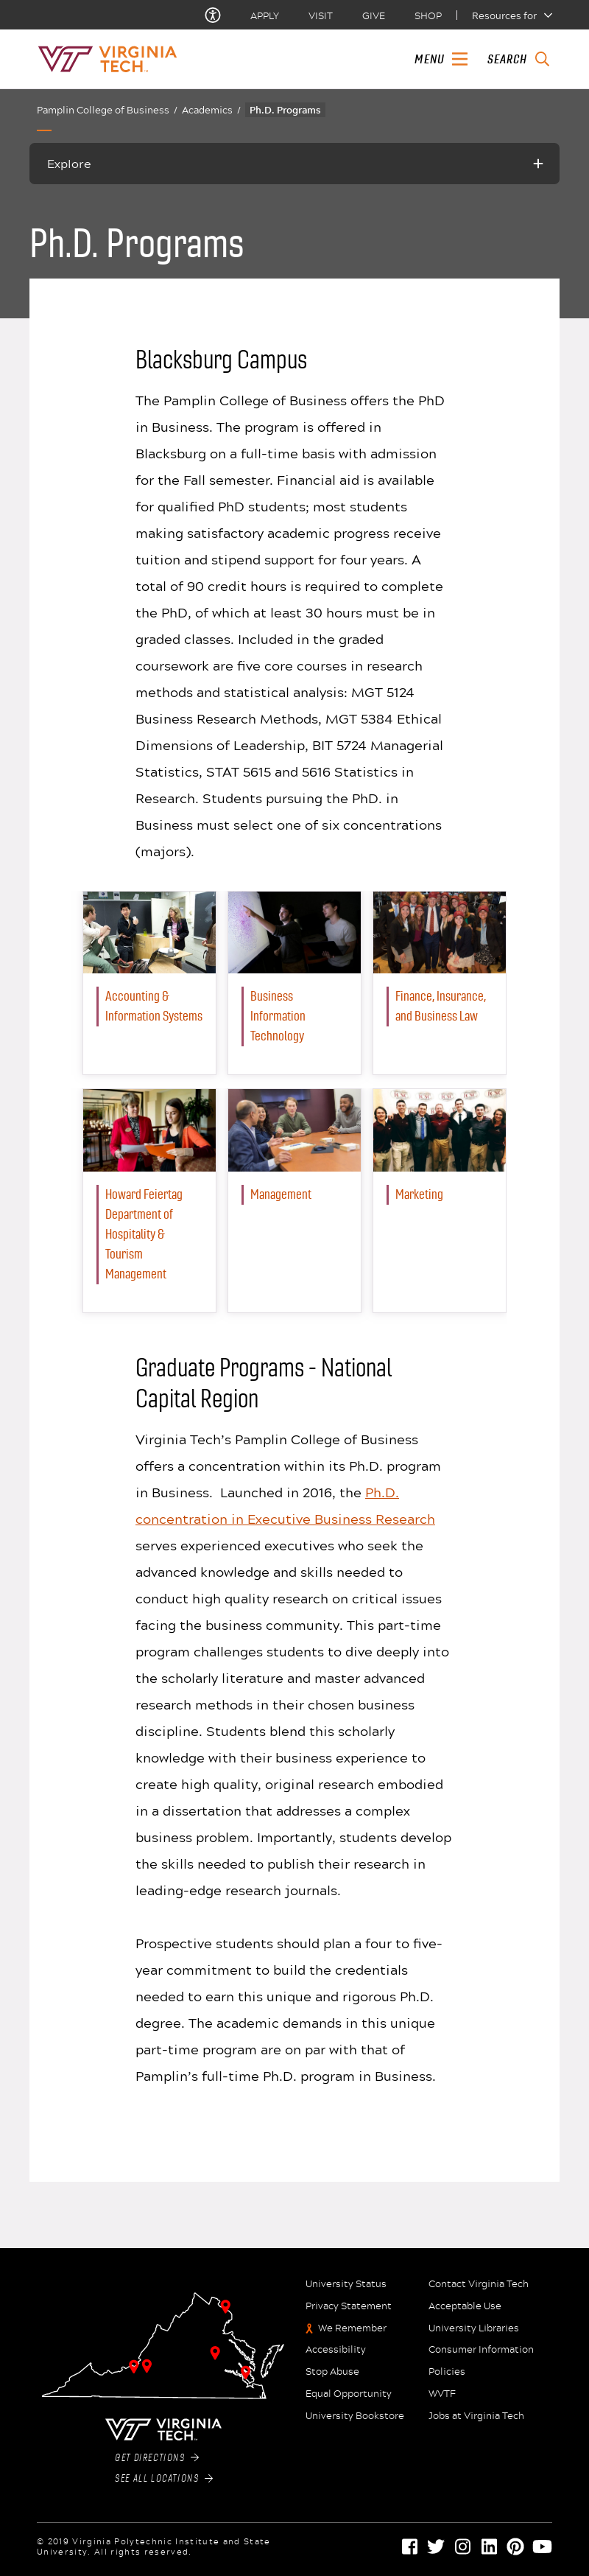 Virginia Polytechnic Institute and State University Pamplin College of Business PhD Programs